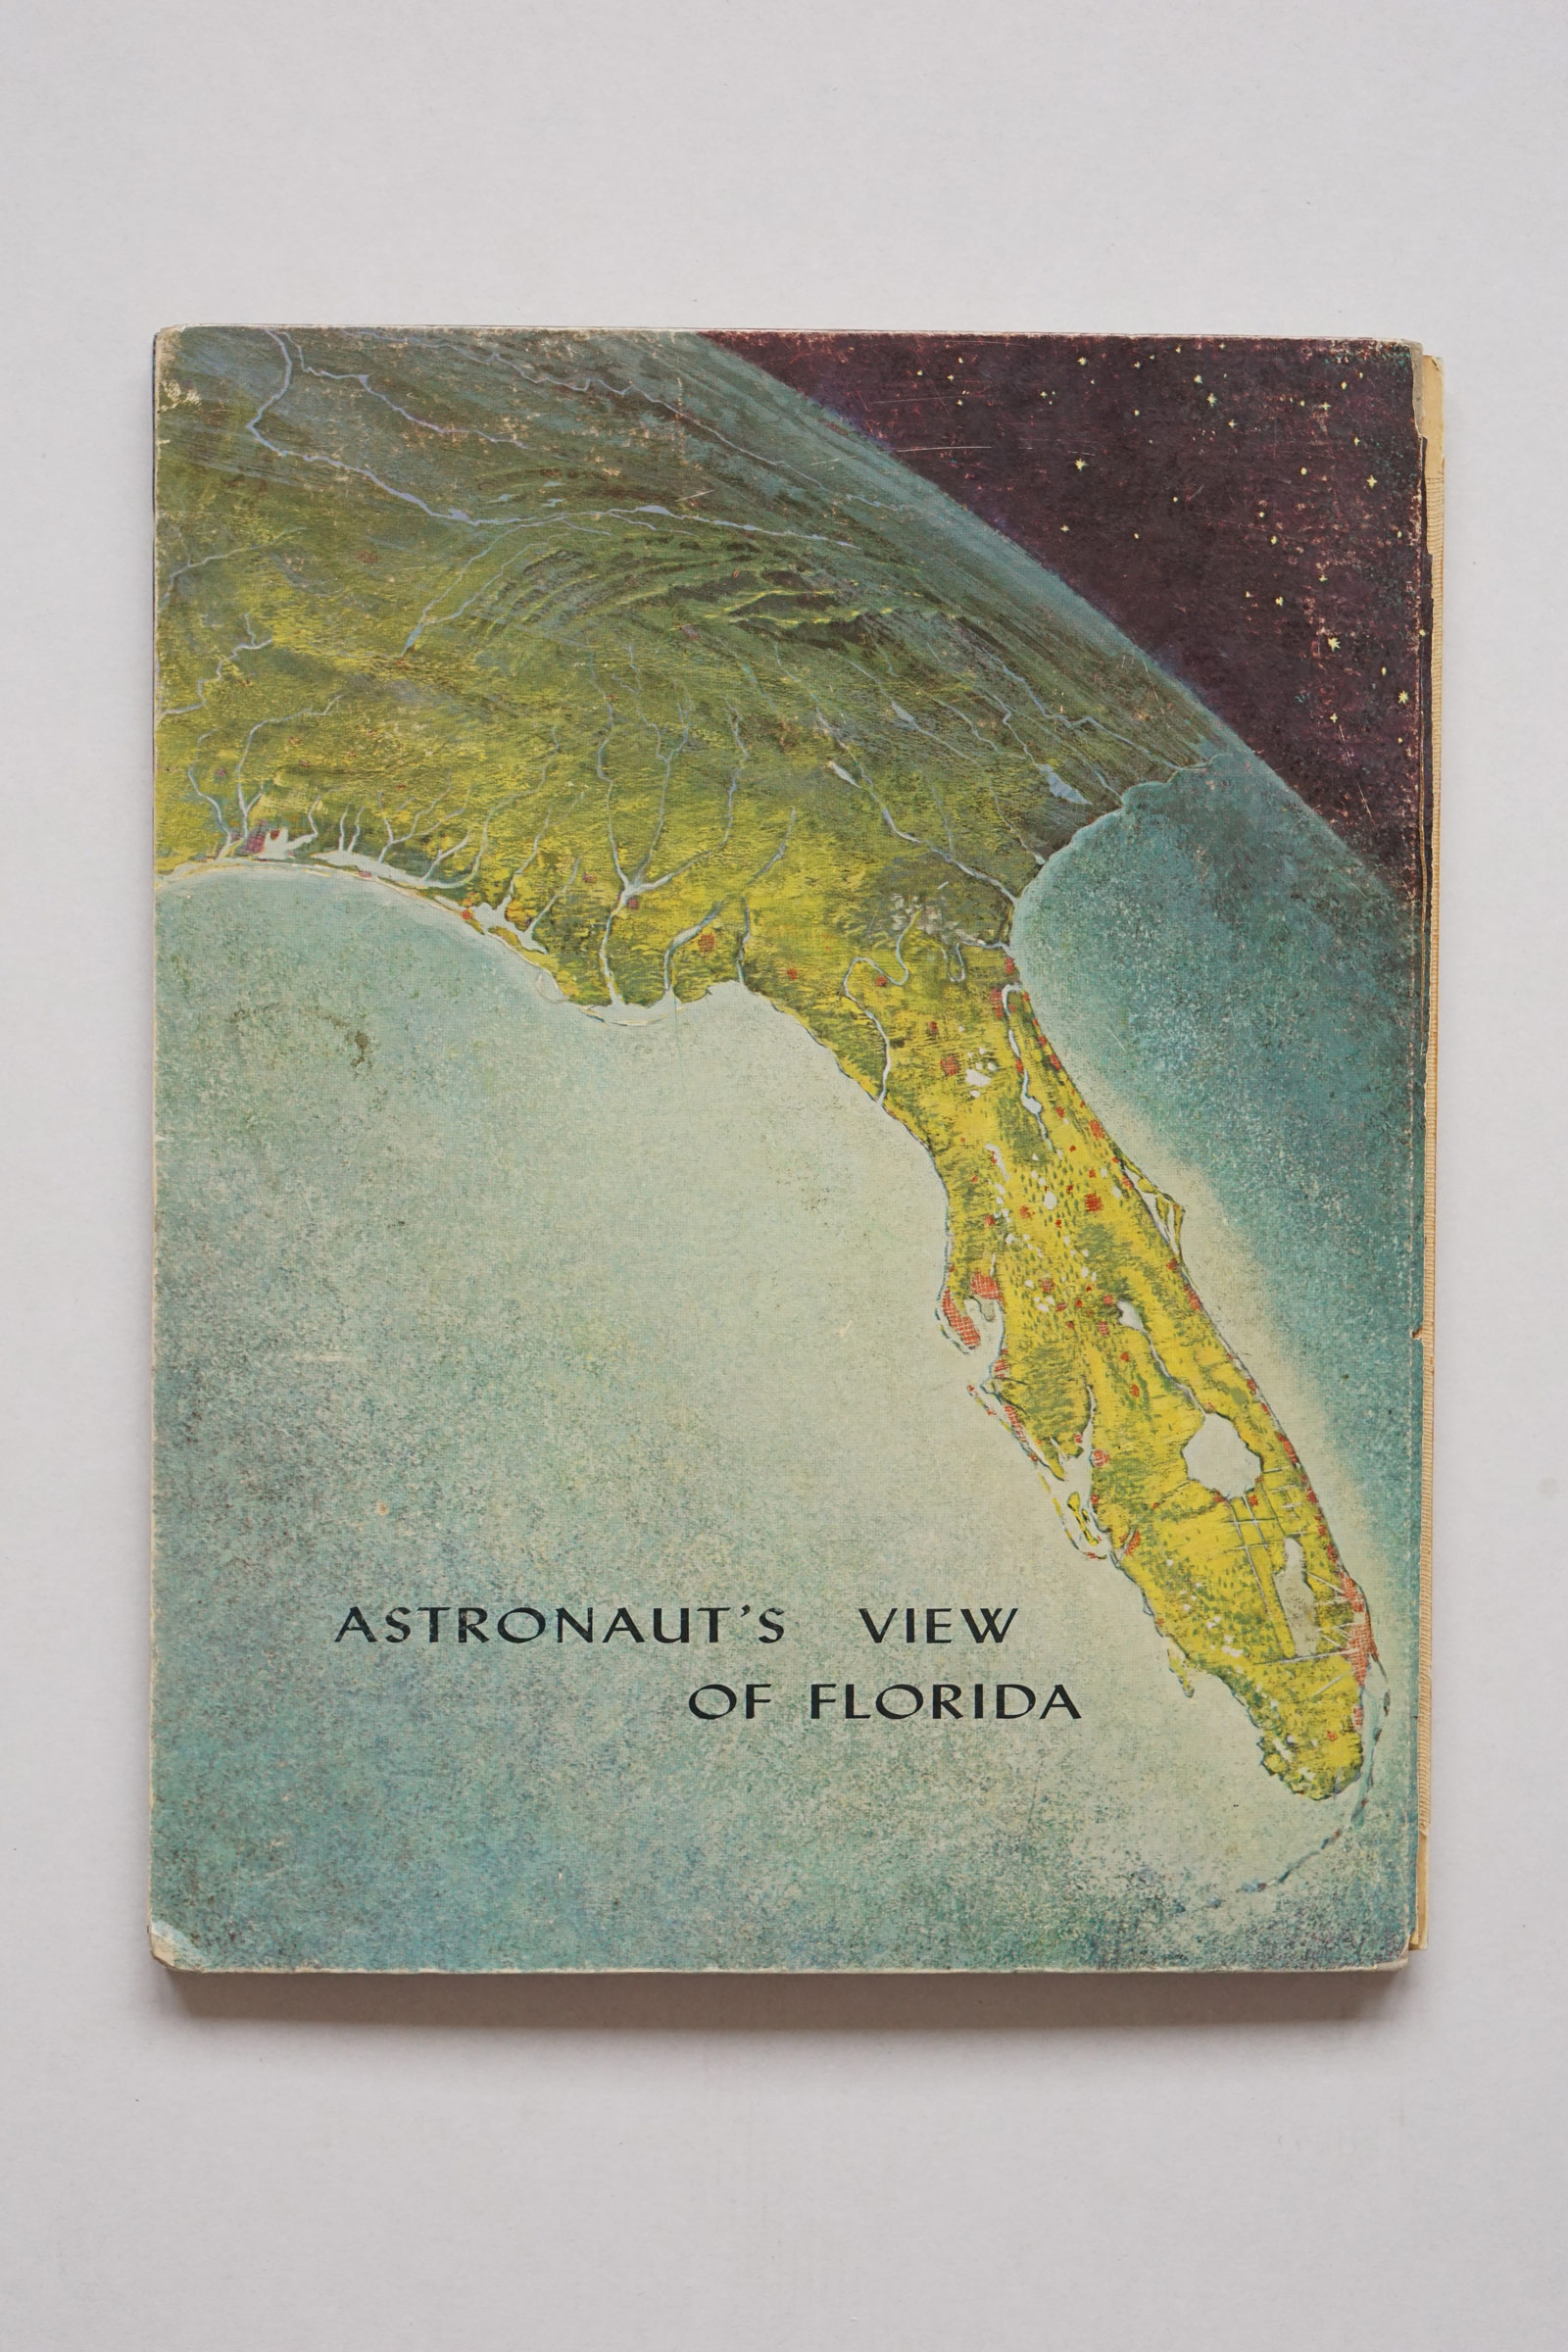 Back cover of The Atlas of Florida by Erwin Raisz - 1964